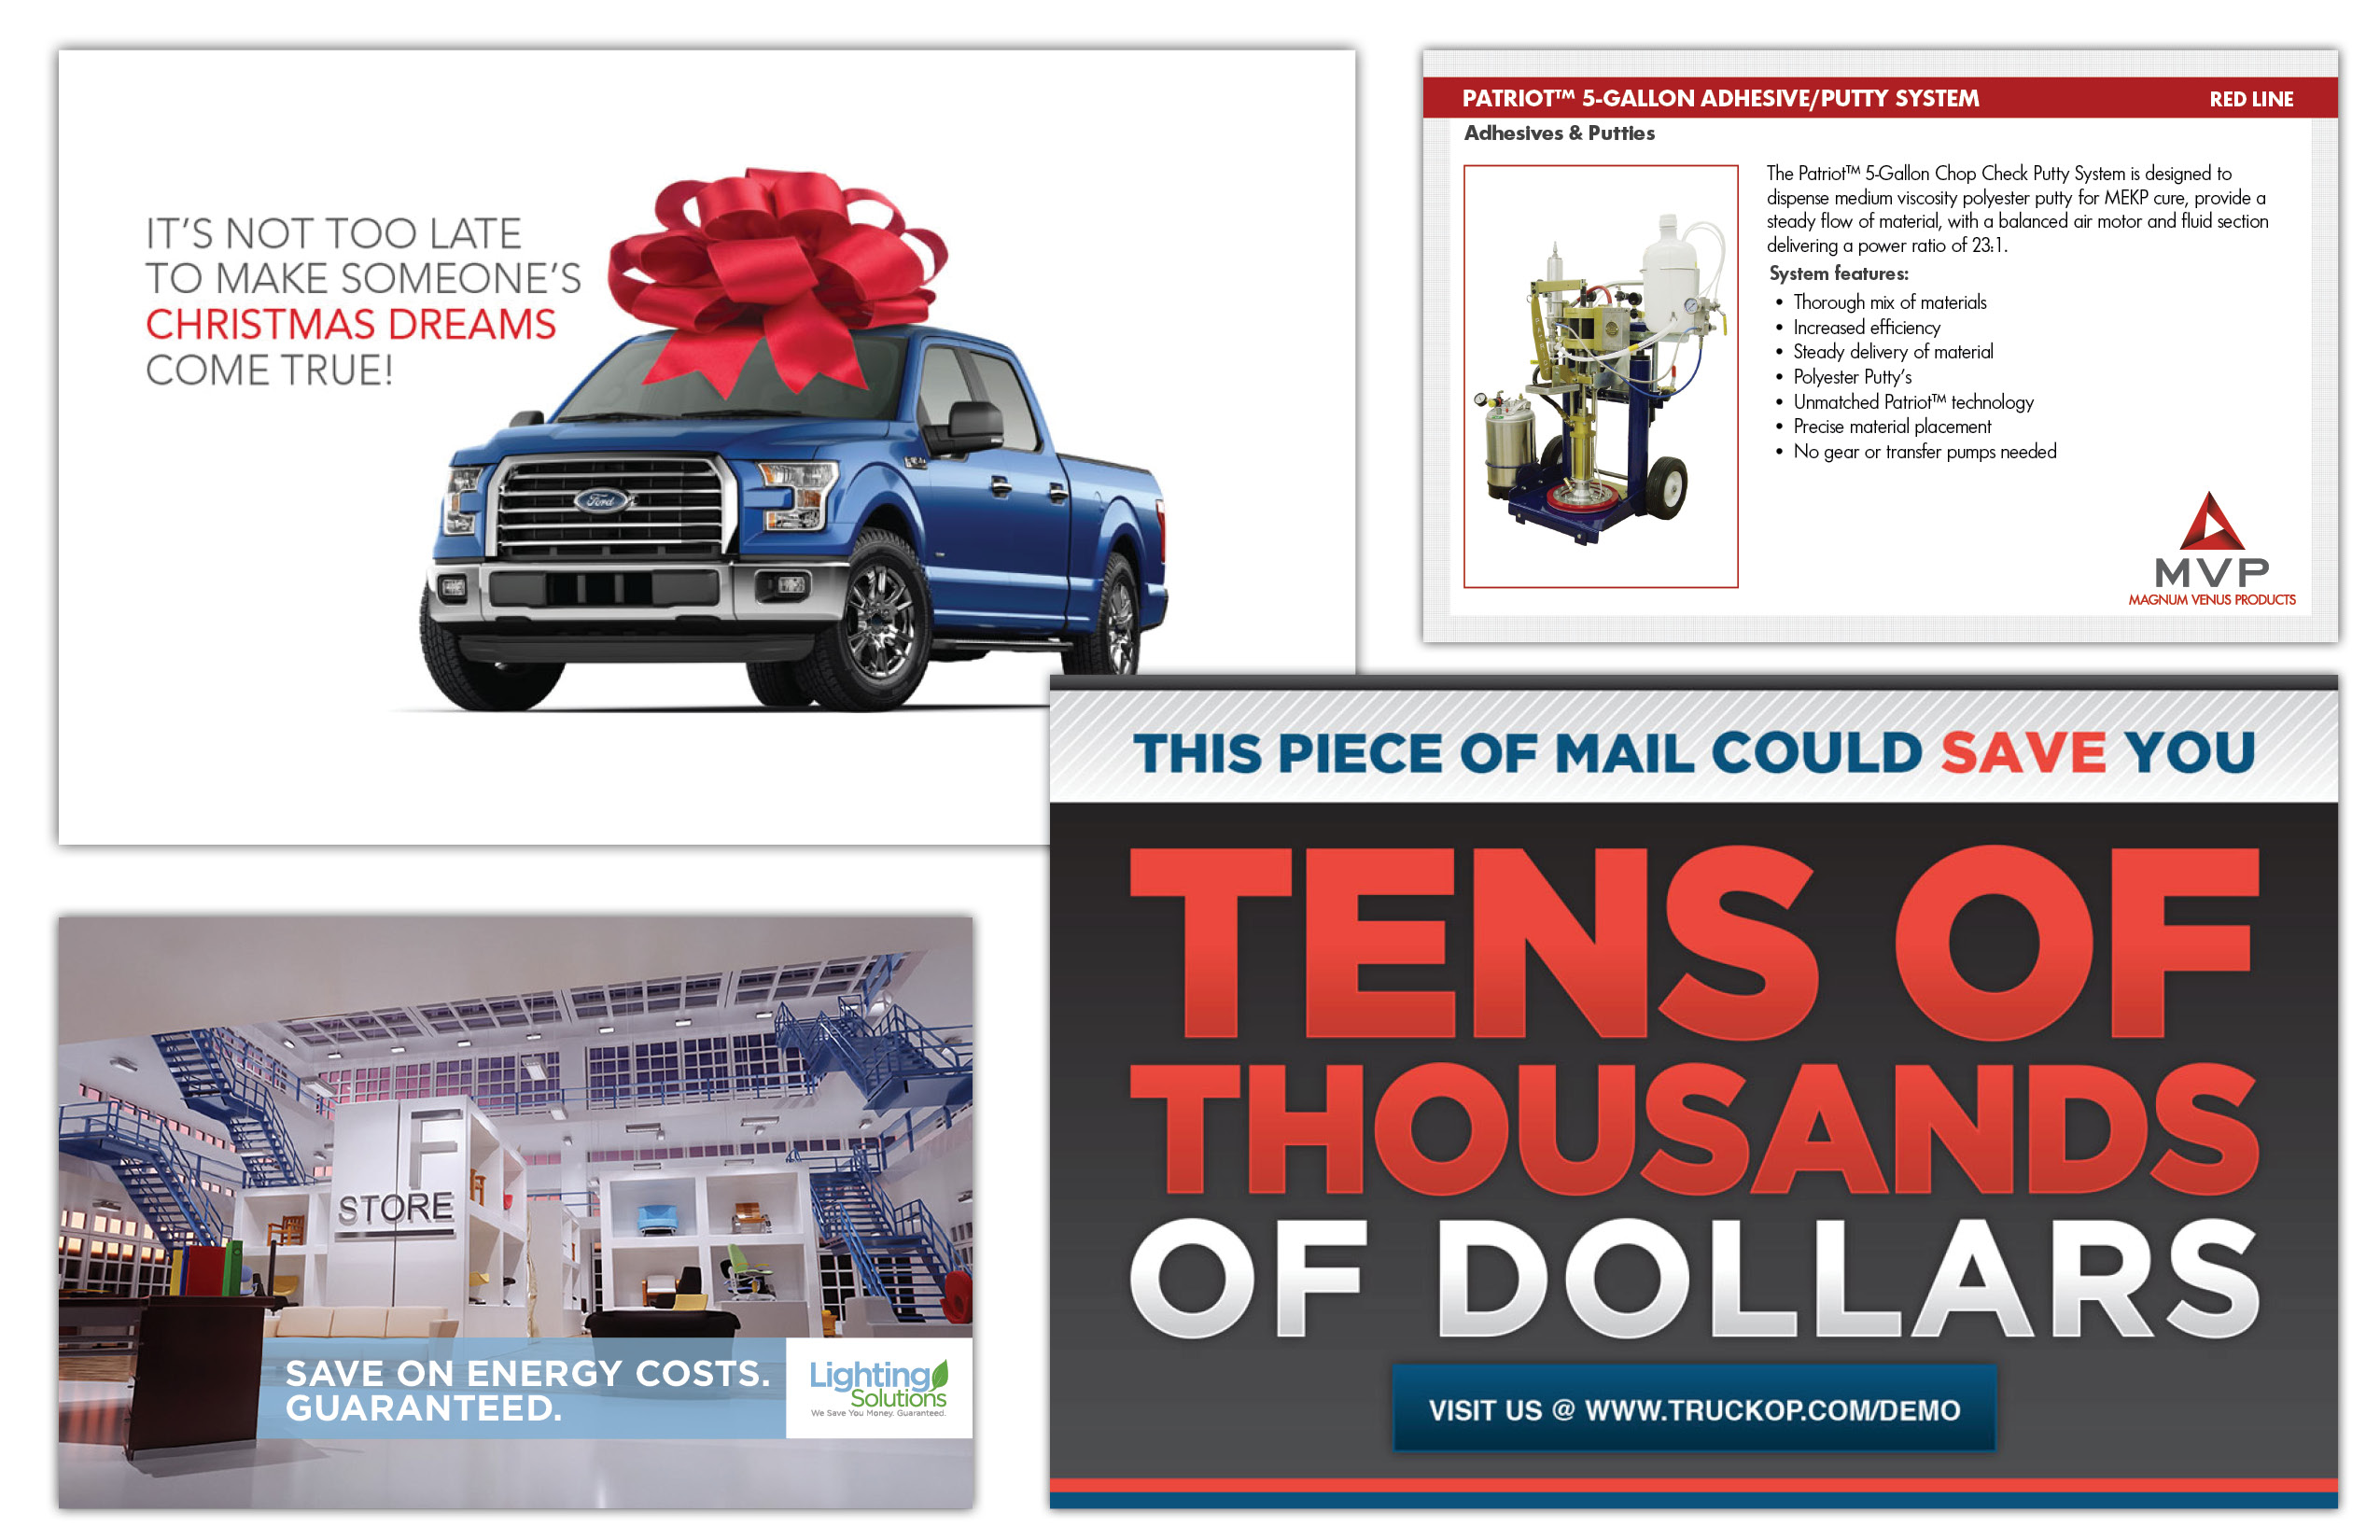 If you have clients that respond well to direct mail, we can develop the right message to elicit a great response.